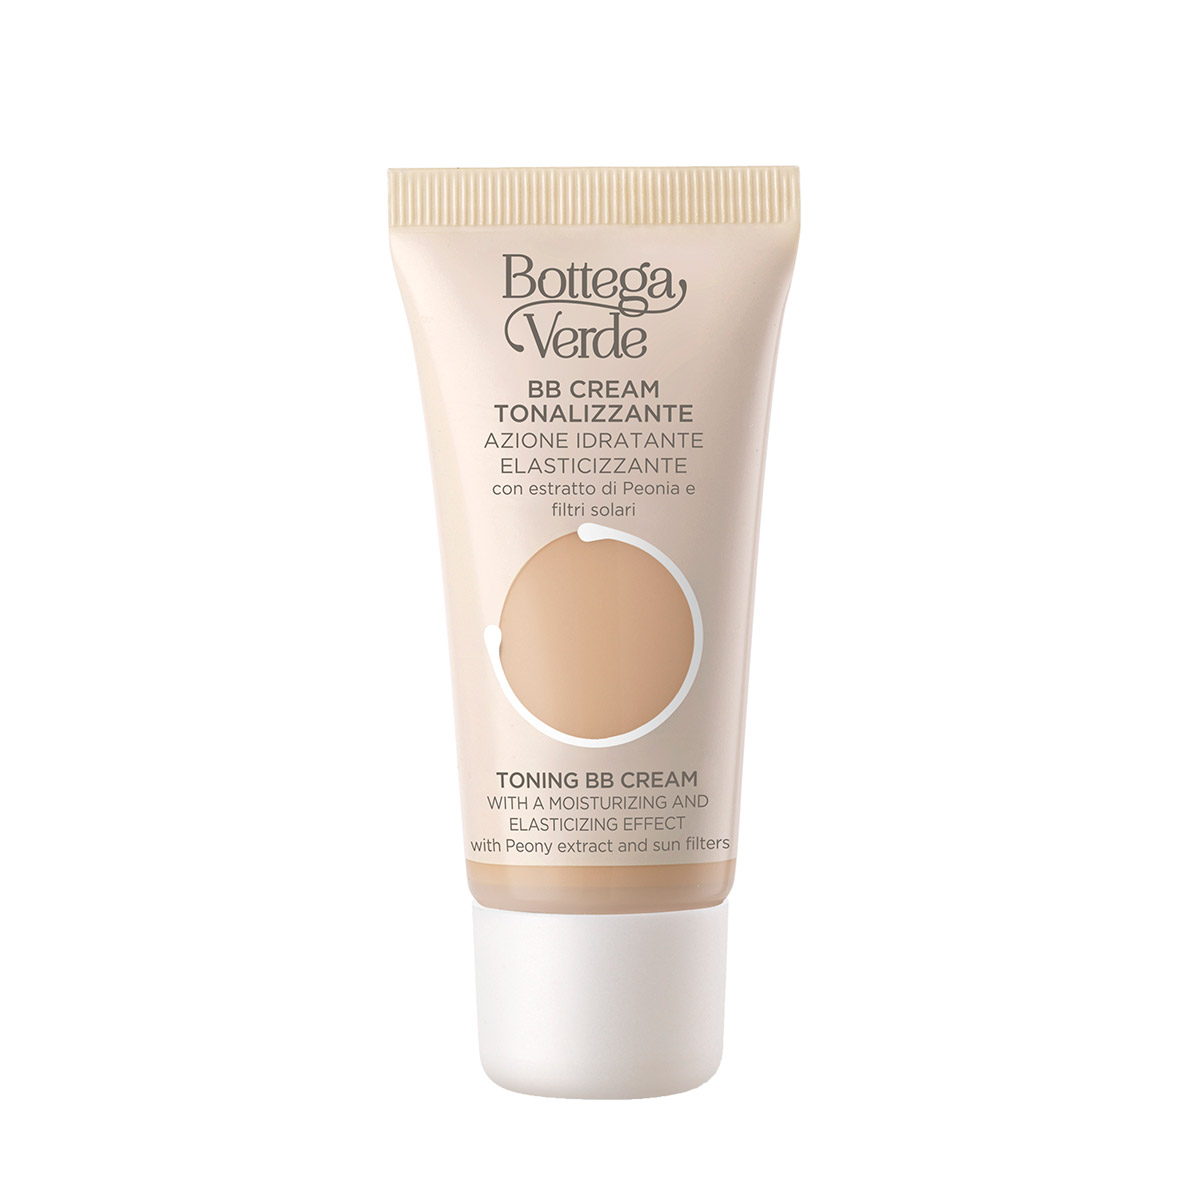 BB cream, intens hidratant, cu extract de bujori si filtre solare imagine